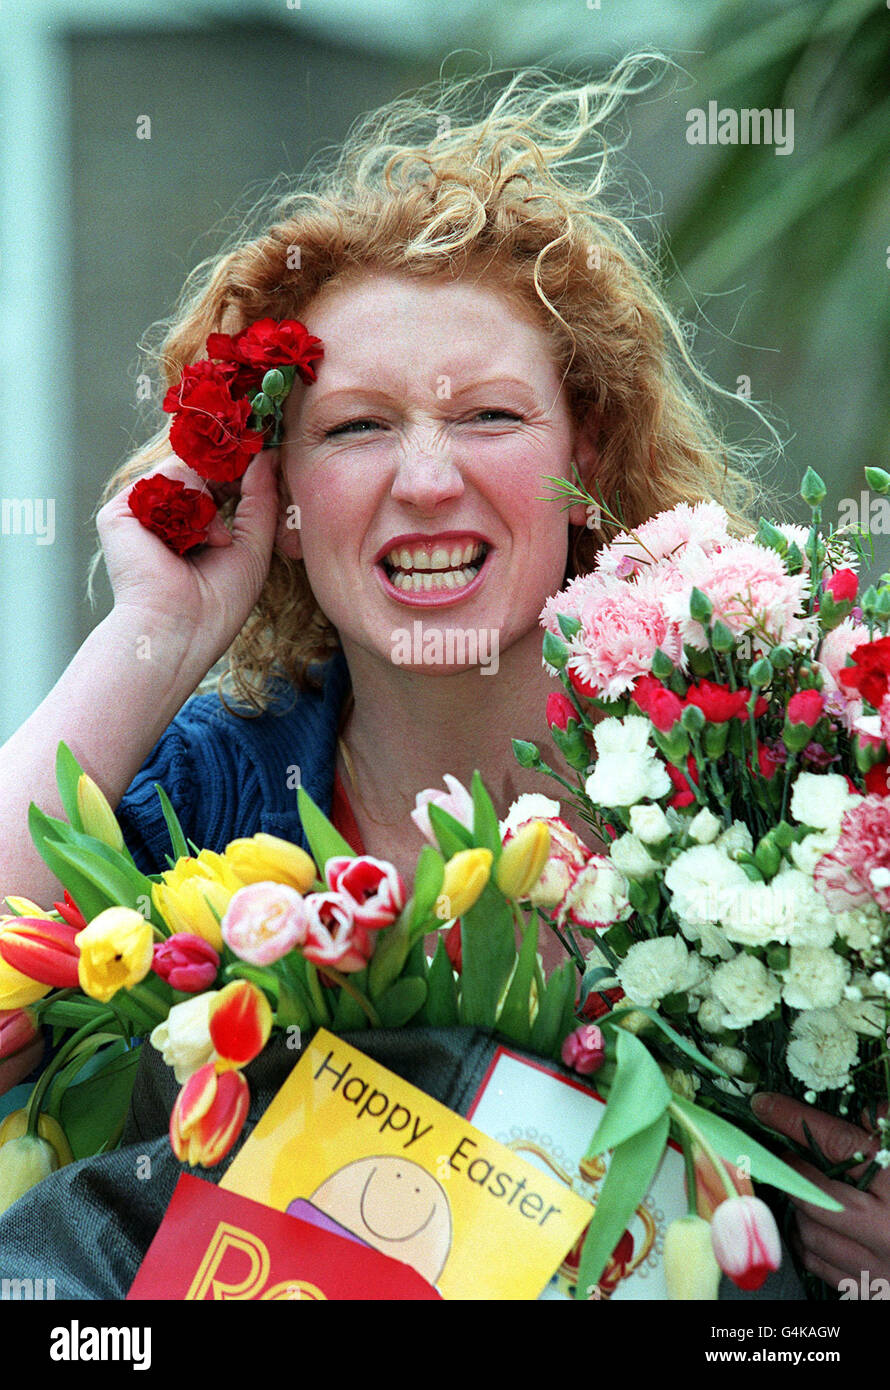 Charlie Dimmock Stock Photos Amp Charlie Dimmock Stock